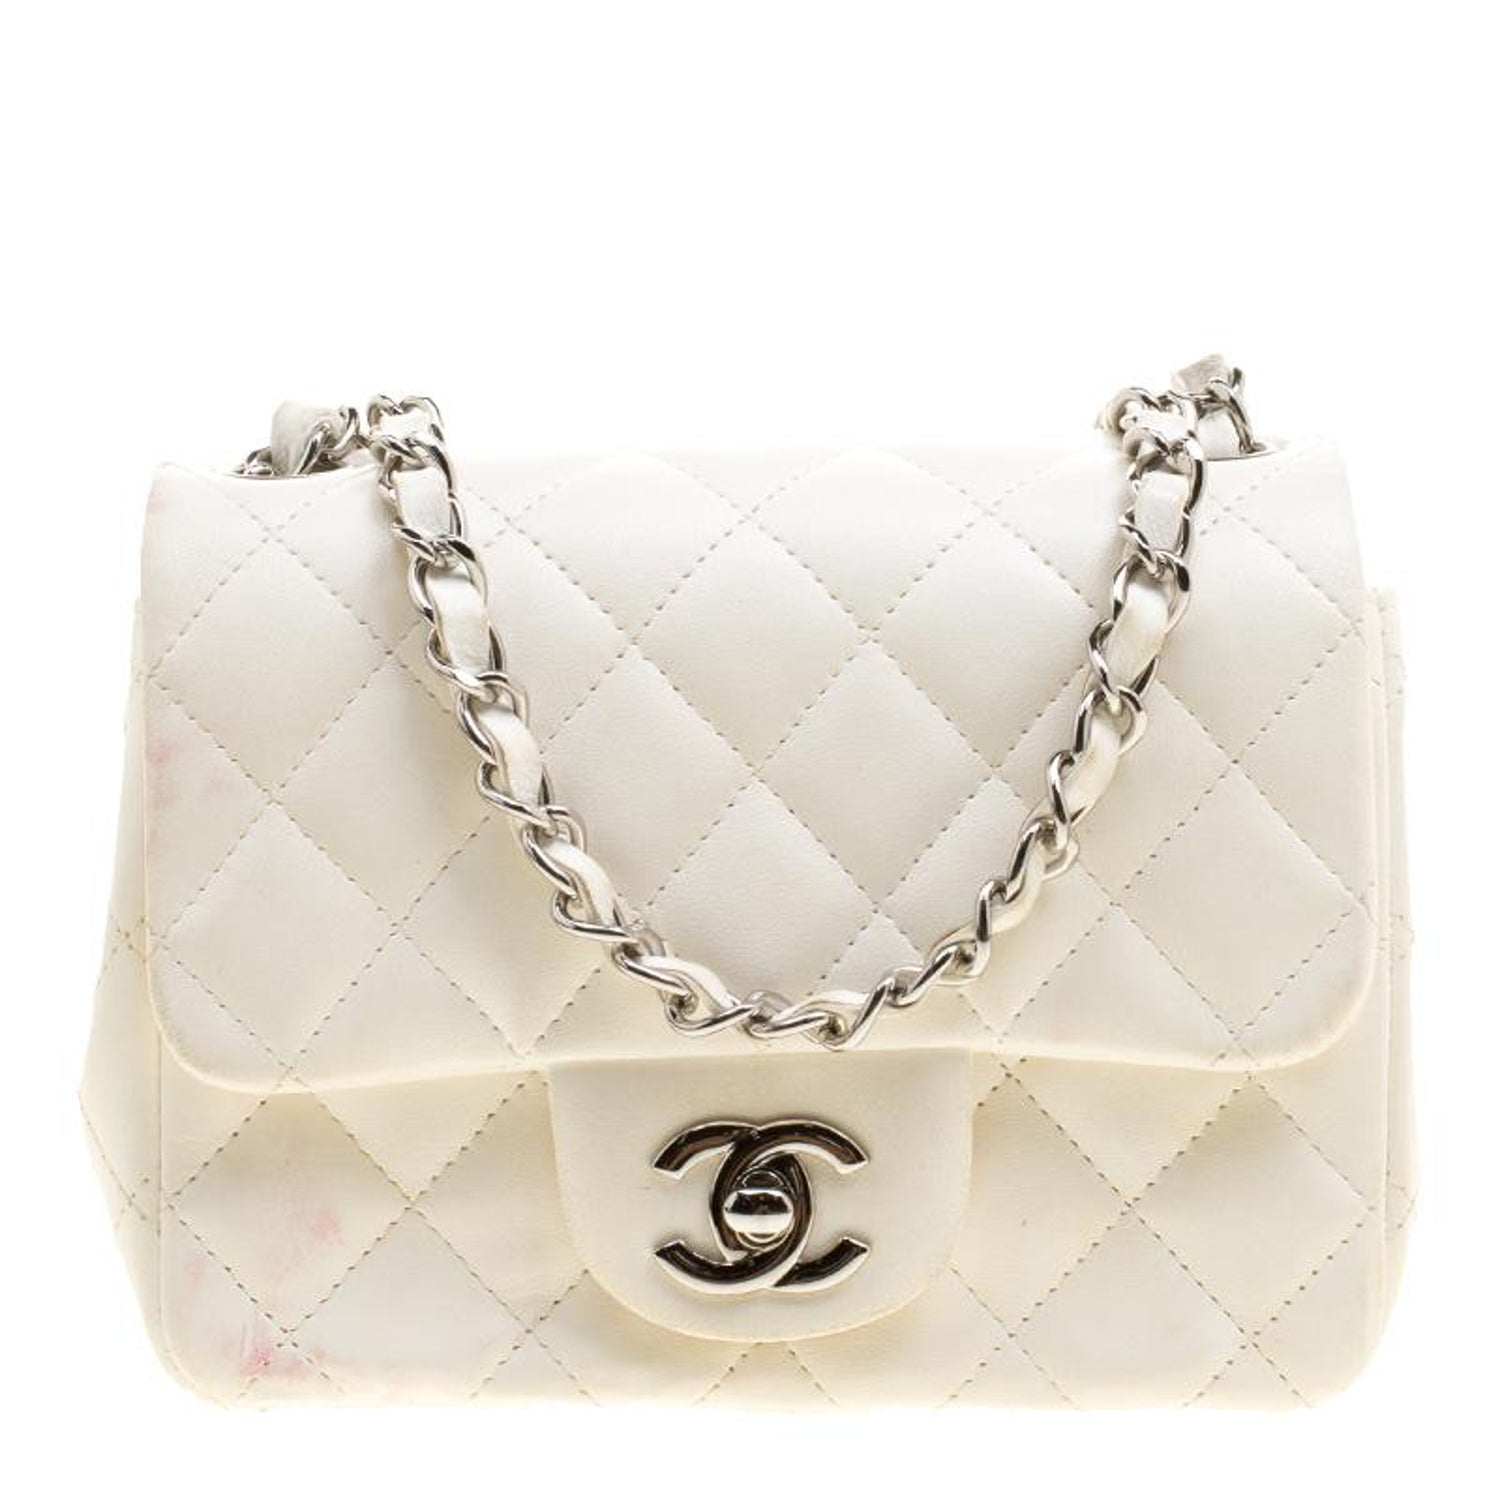 3f4c0cdc2126 Chanel White Quilted Leather Mini Classic Single Flap Bag at 1stdibs